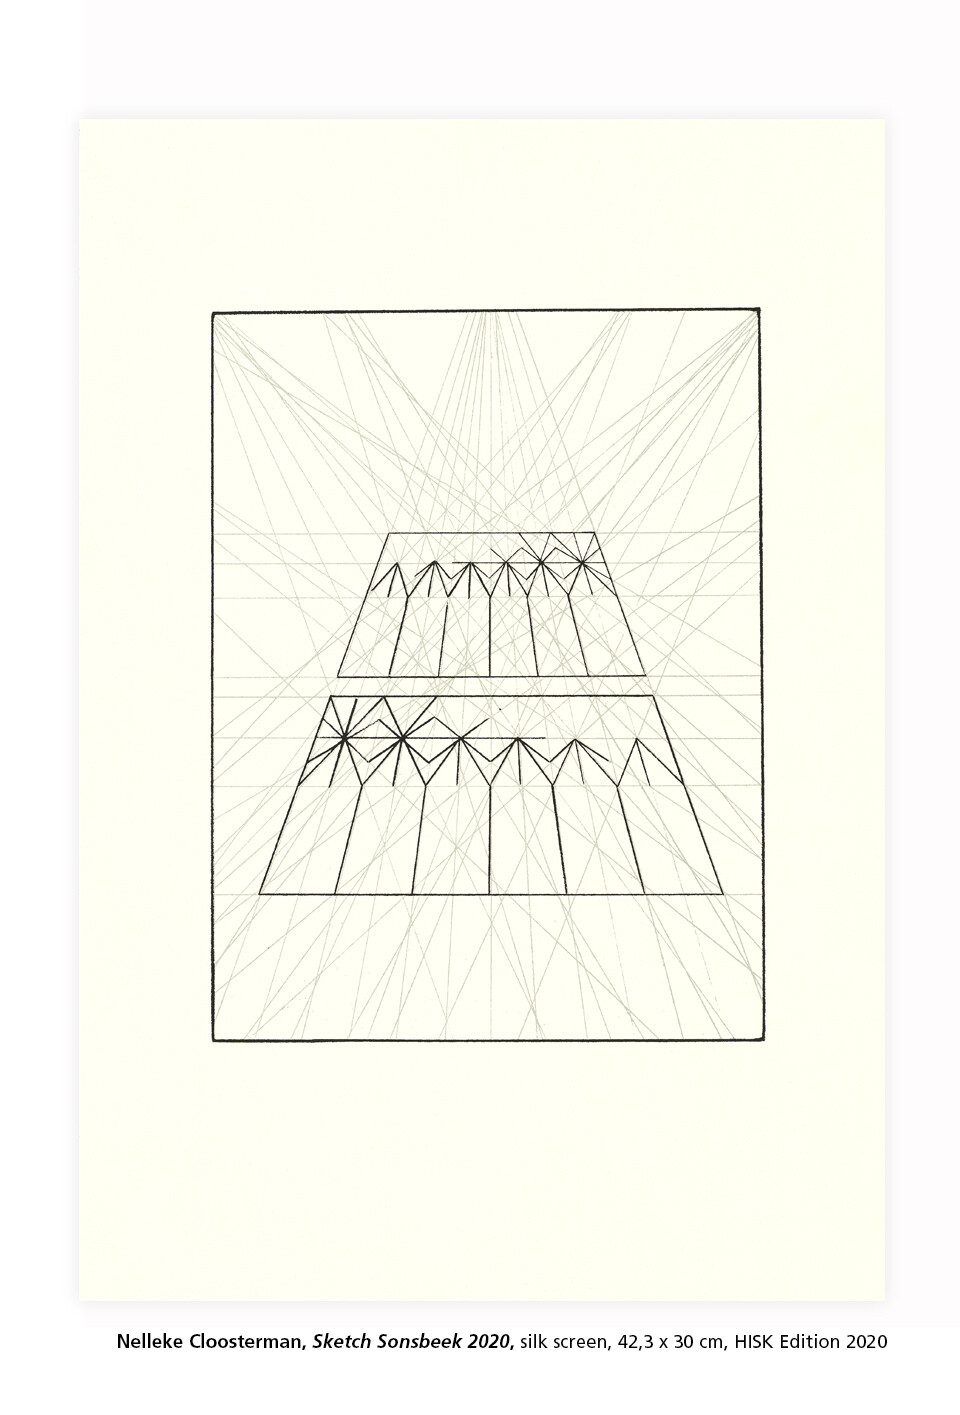 HISK edition 2020 - Box D - selection of 5 prints